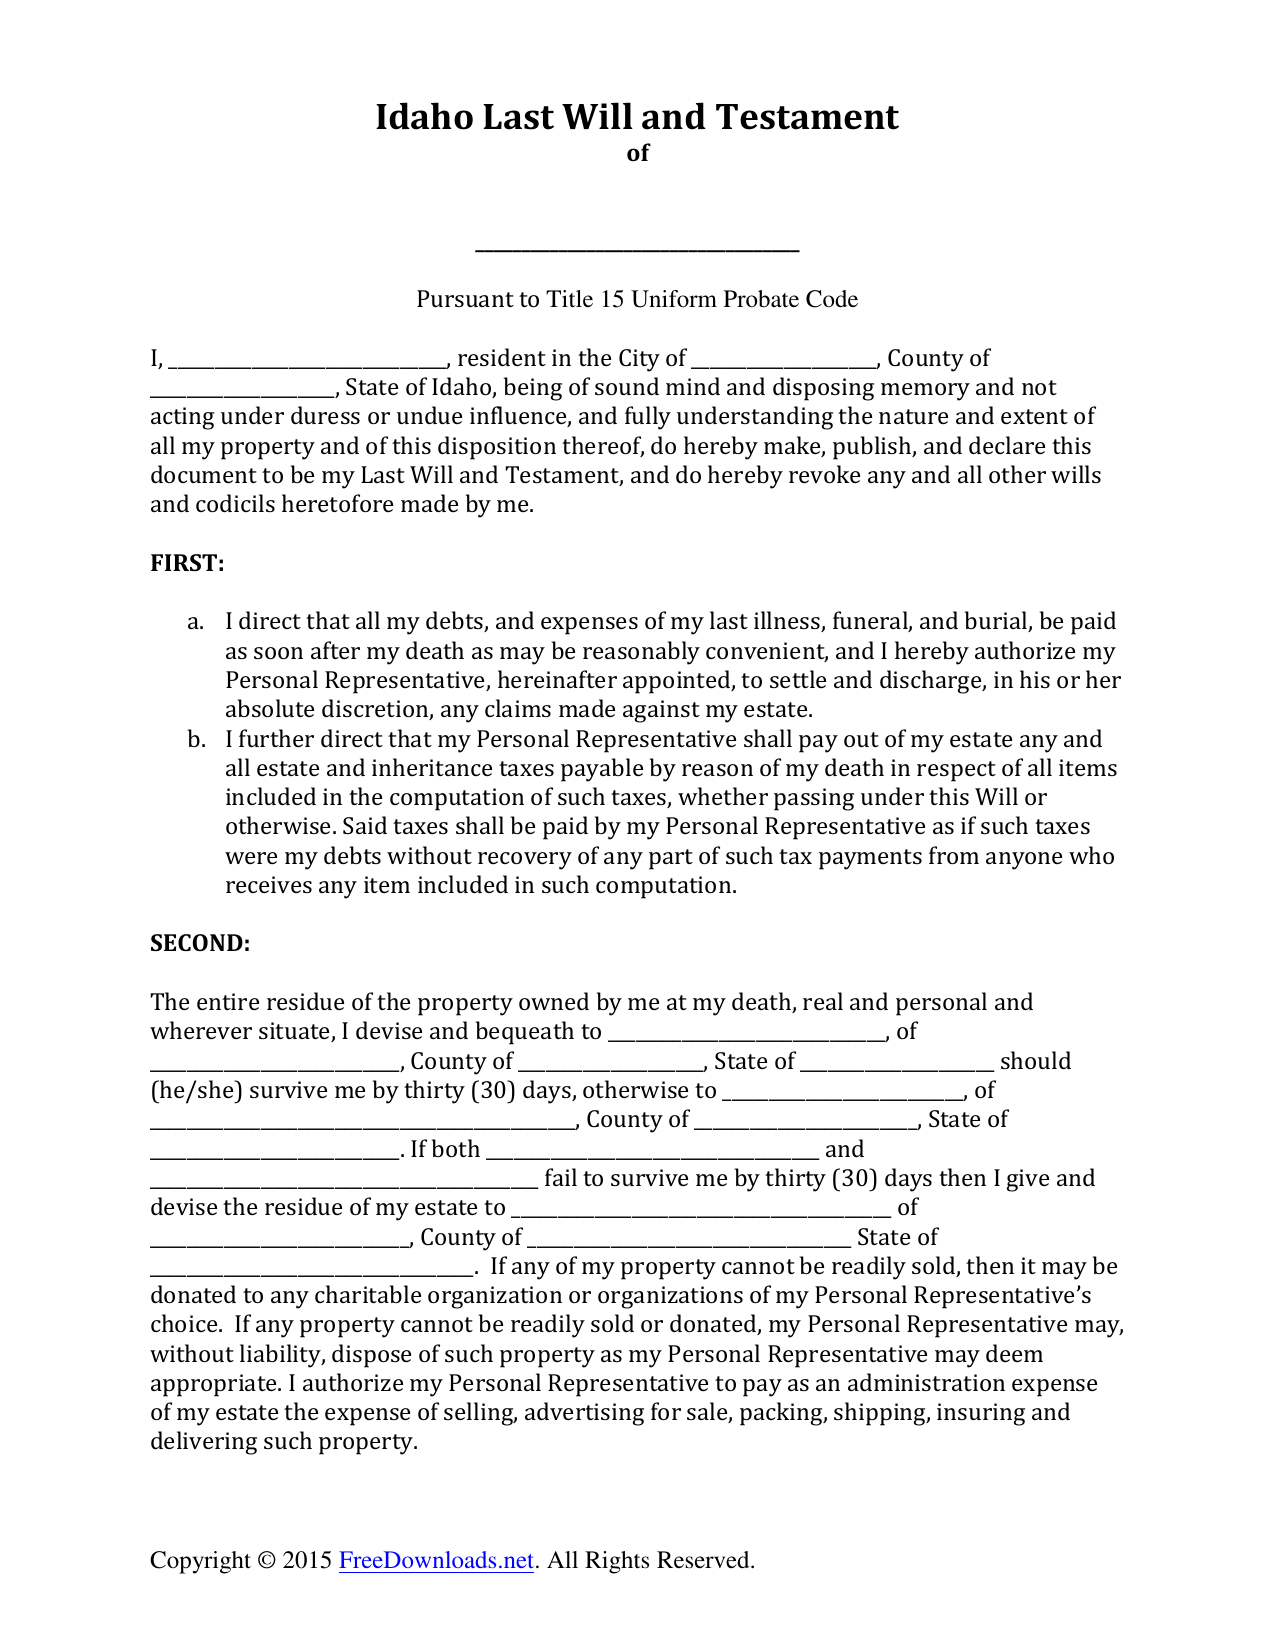 Download Idaho Last Will And Testament Form | Pdf | Rtf | Word - Free Printable Last Will And Testament Forms